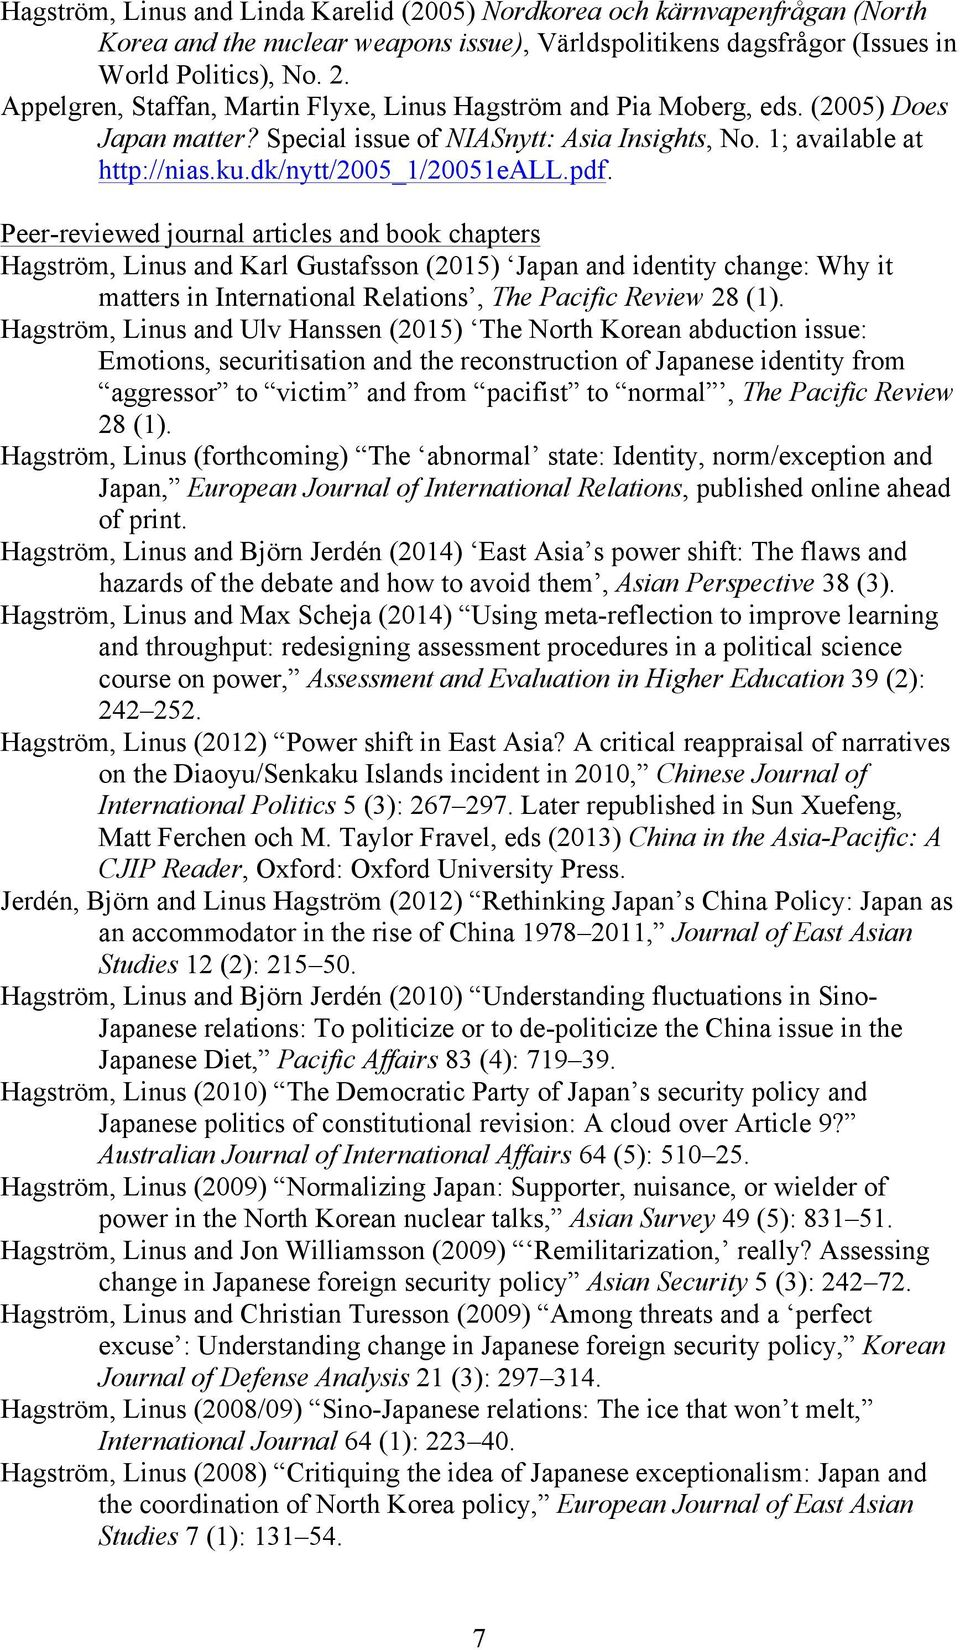 pdf. Peer-reviewed journal articles and book chapters Hagström, Linus and Karl Gustafsson (2015) Japan and identity change: Why it matters in International Relations, The Pacific Review 28 (1).